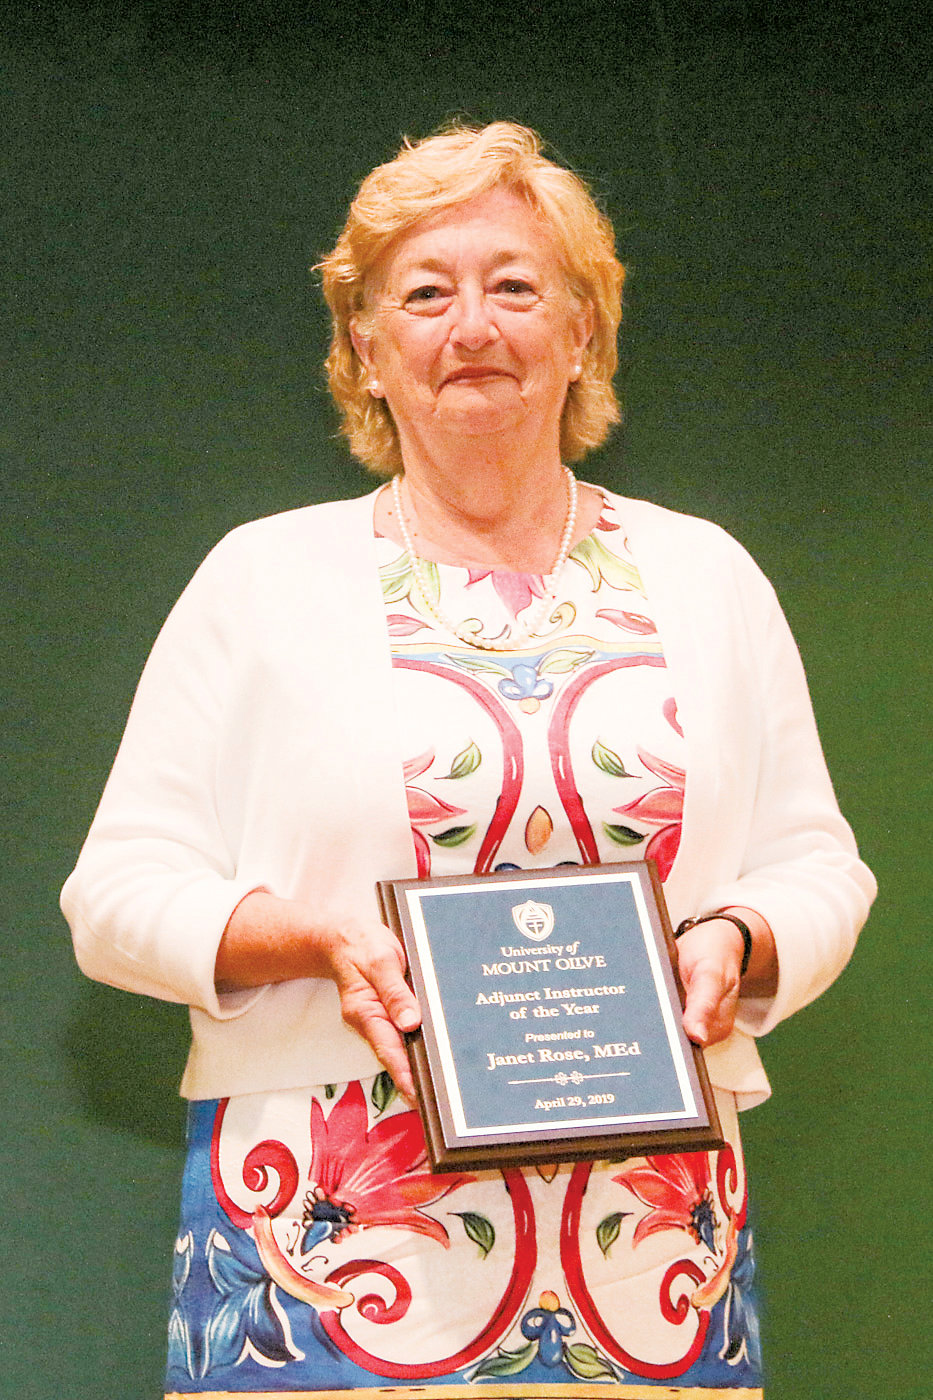 Janet Rose of Calypso is pictured with her award, having received the 2019 Adjunct Instructor of the Year Award at the University of Mount Olive.